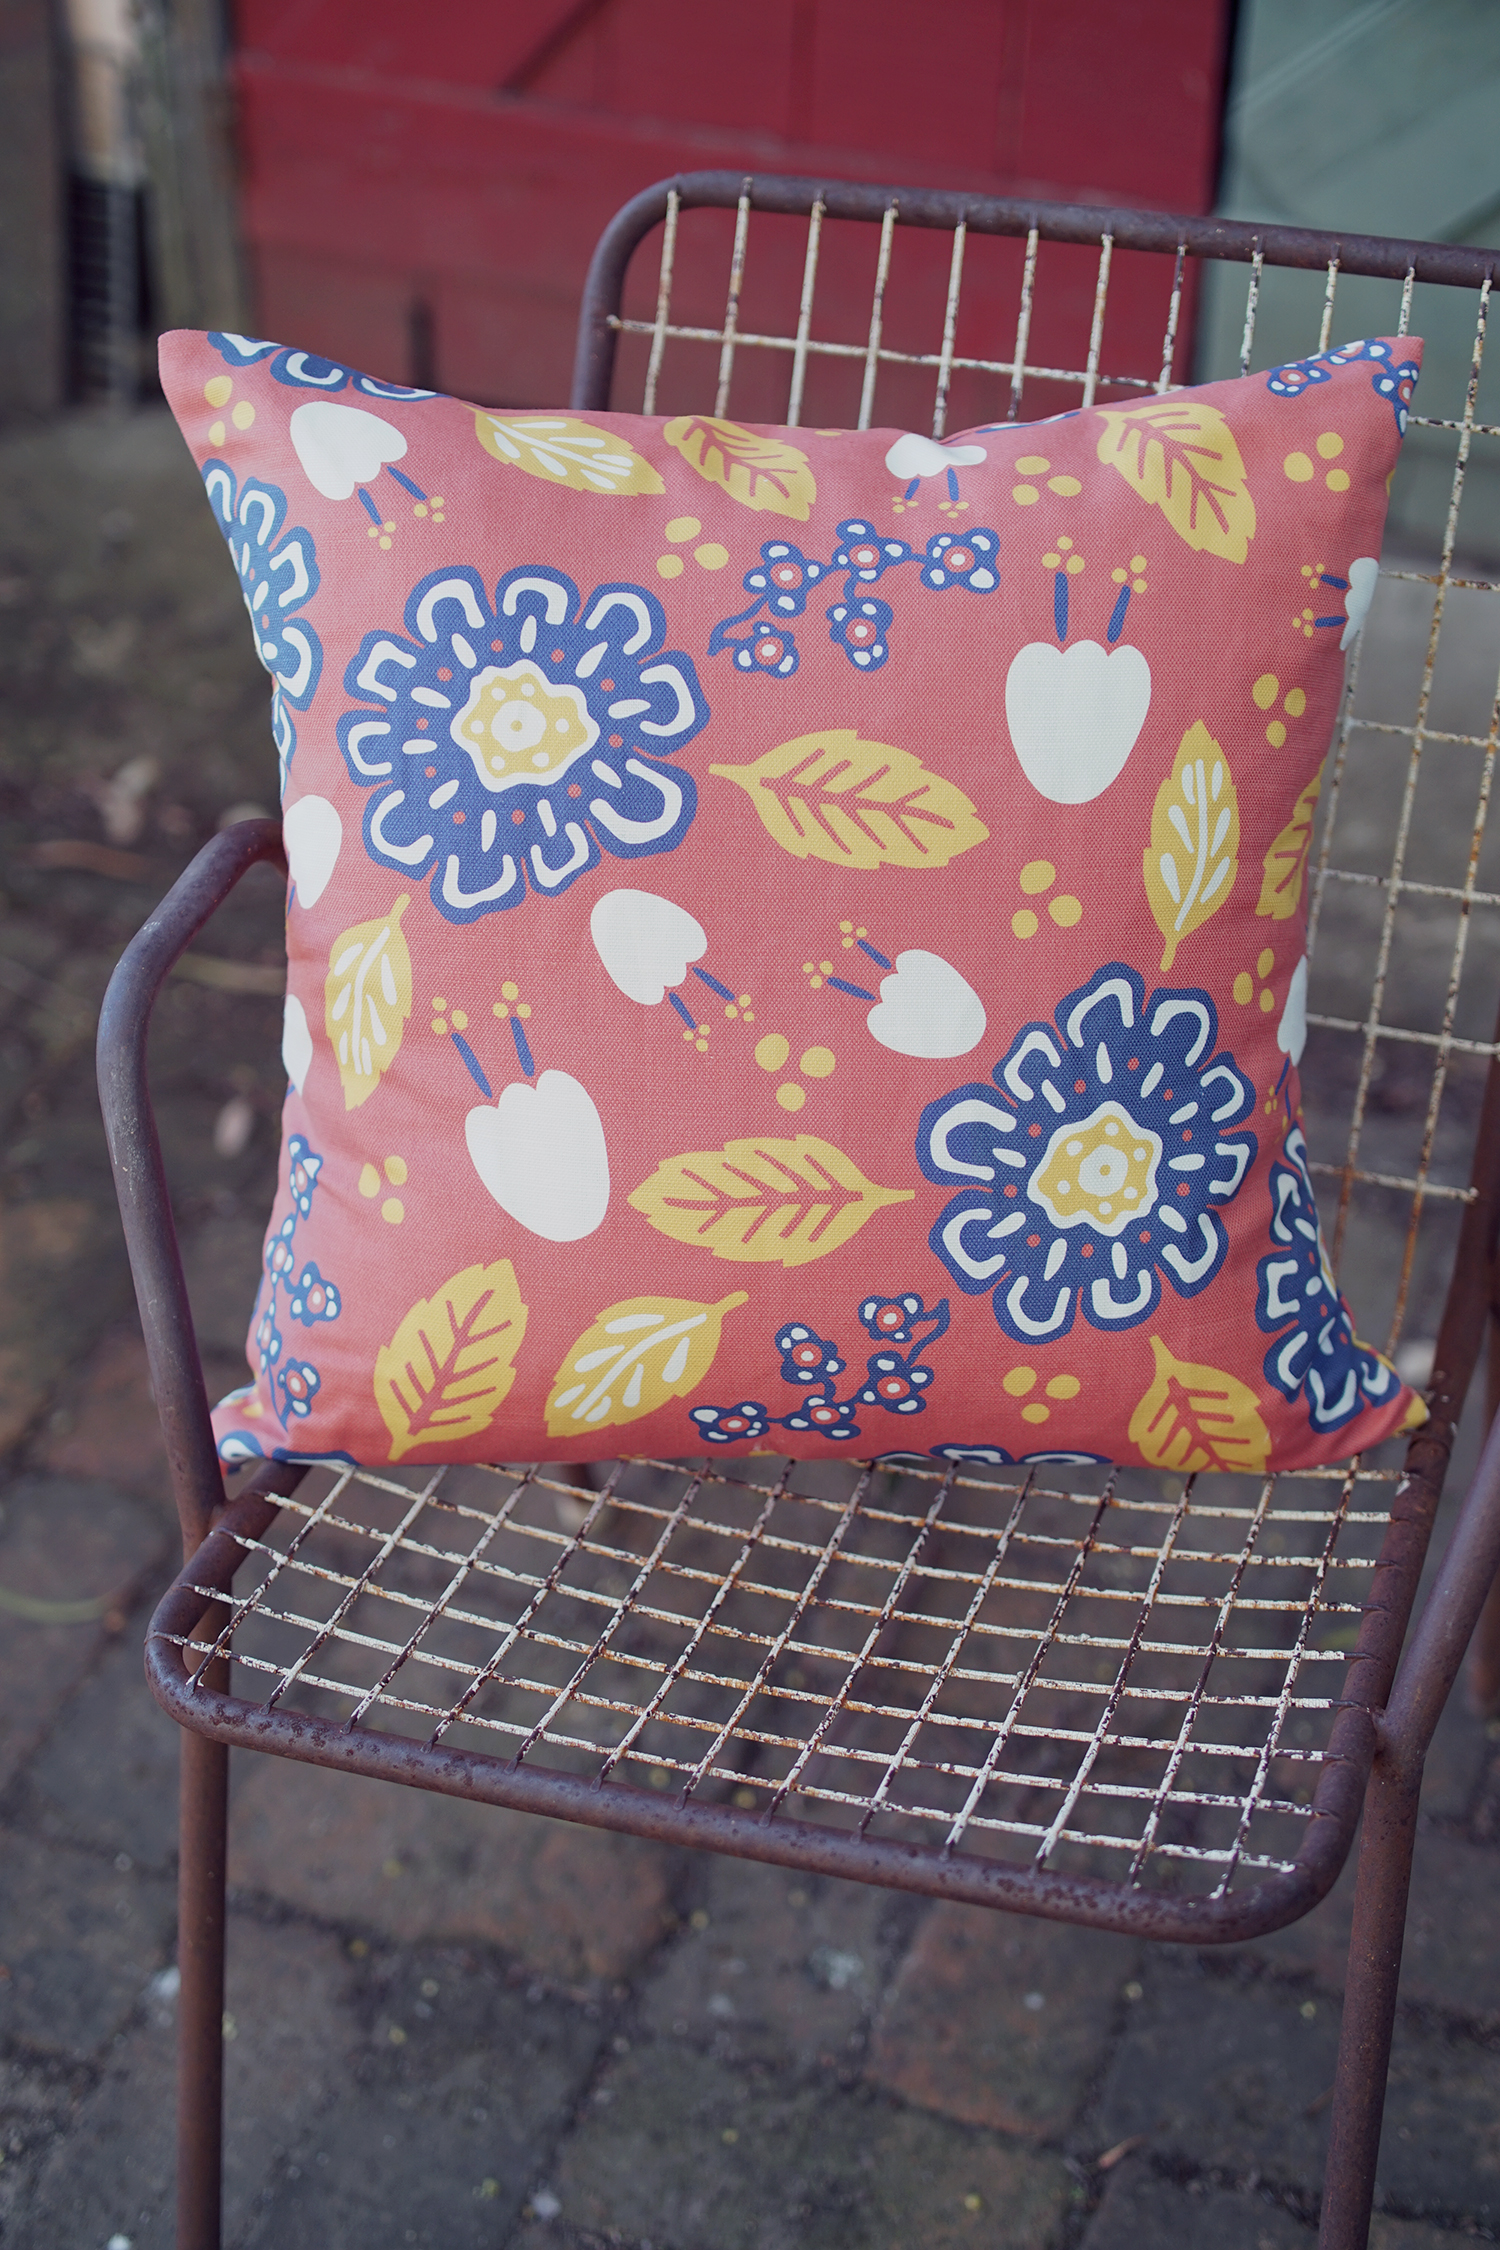 KESÄ CUSHION COVER - BURNT RED - Welcome a piece of Finnish-inspired warmth into your world with our Kesä Cushion Cover in Burnt Red. Made from a natural cotton/linen blend, it will add an eye-catching burst of colour to any home or office setting.